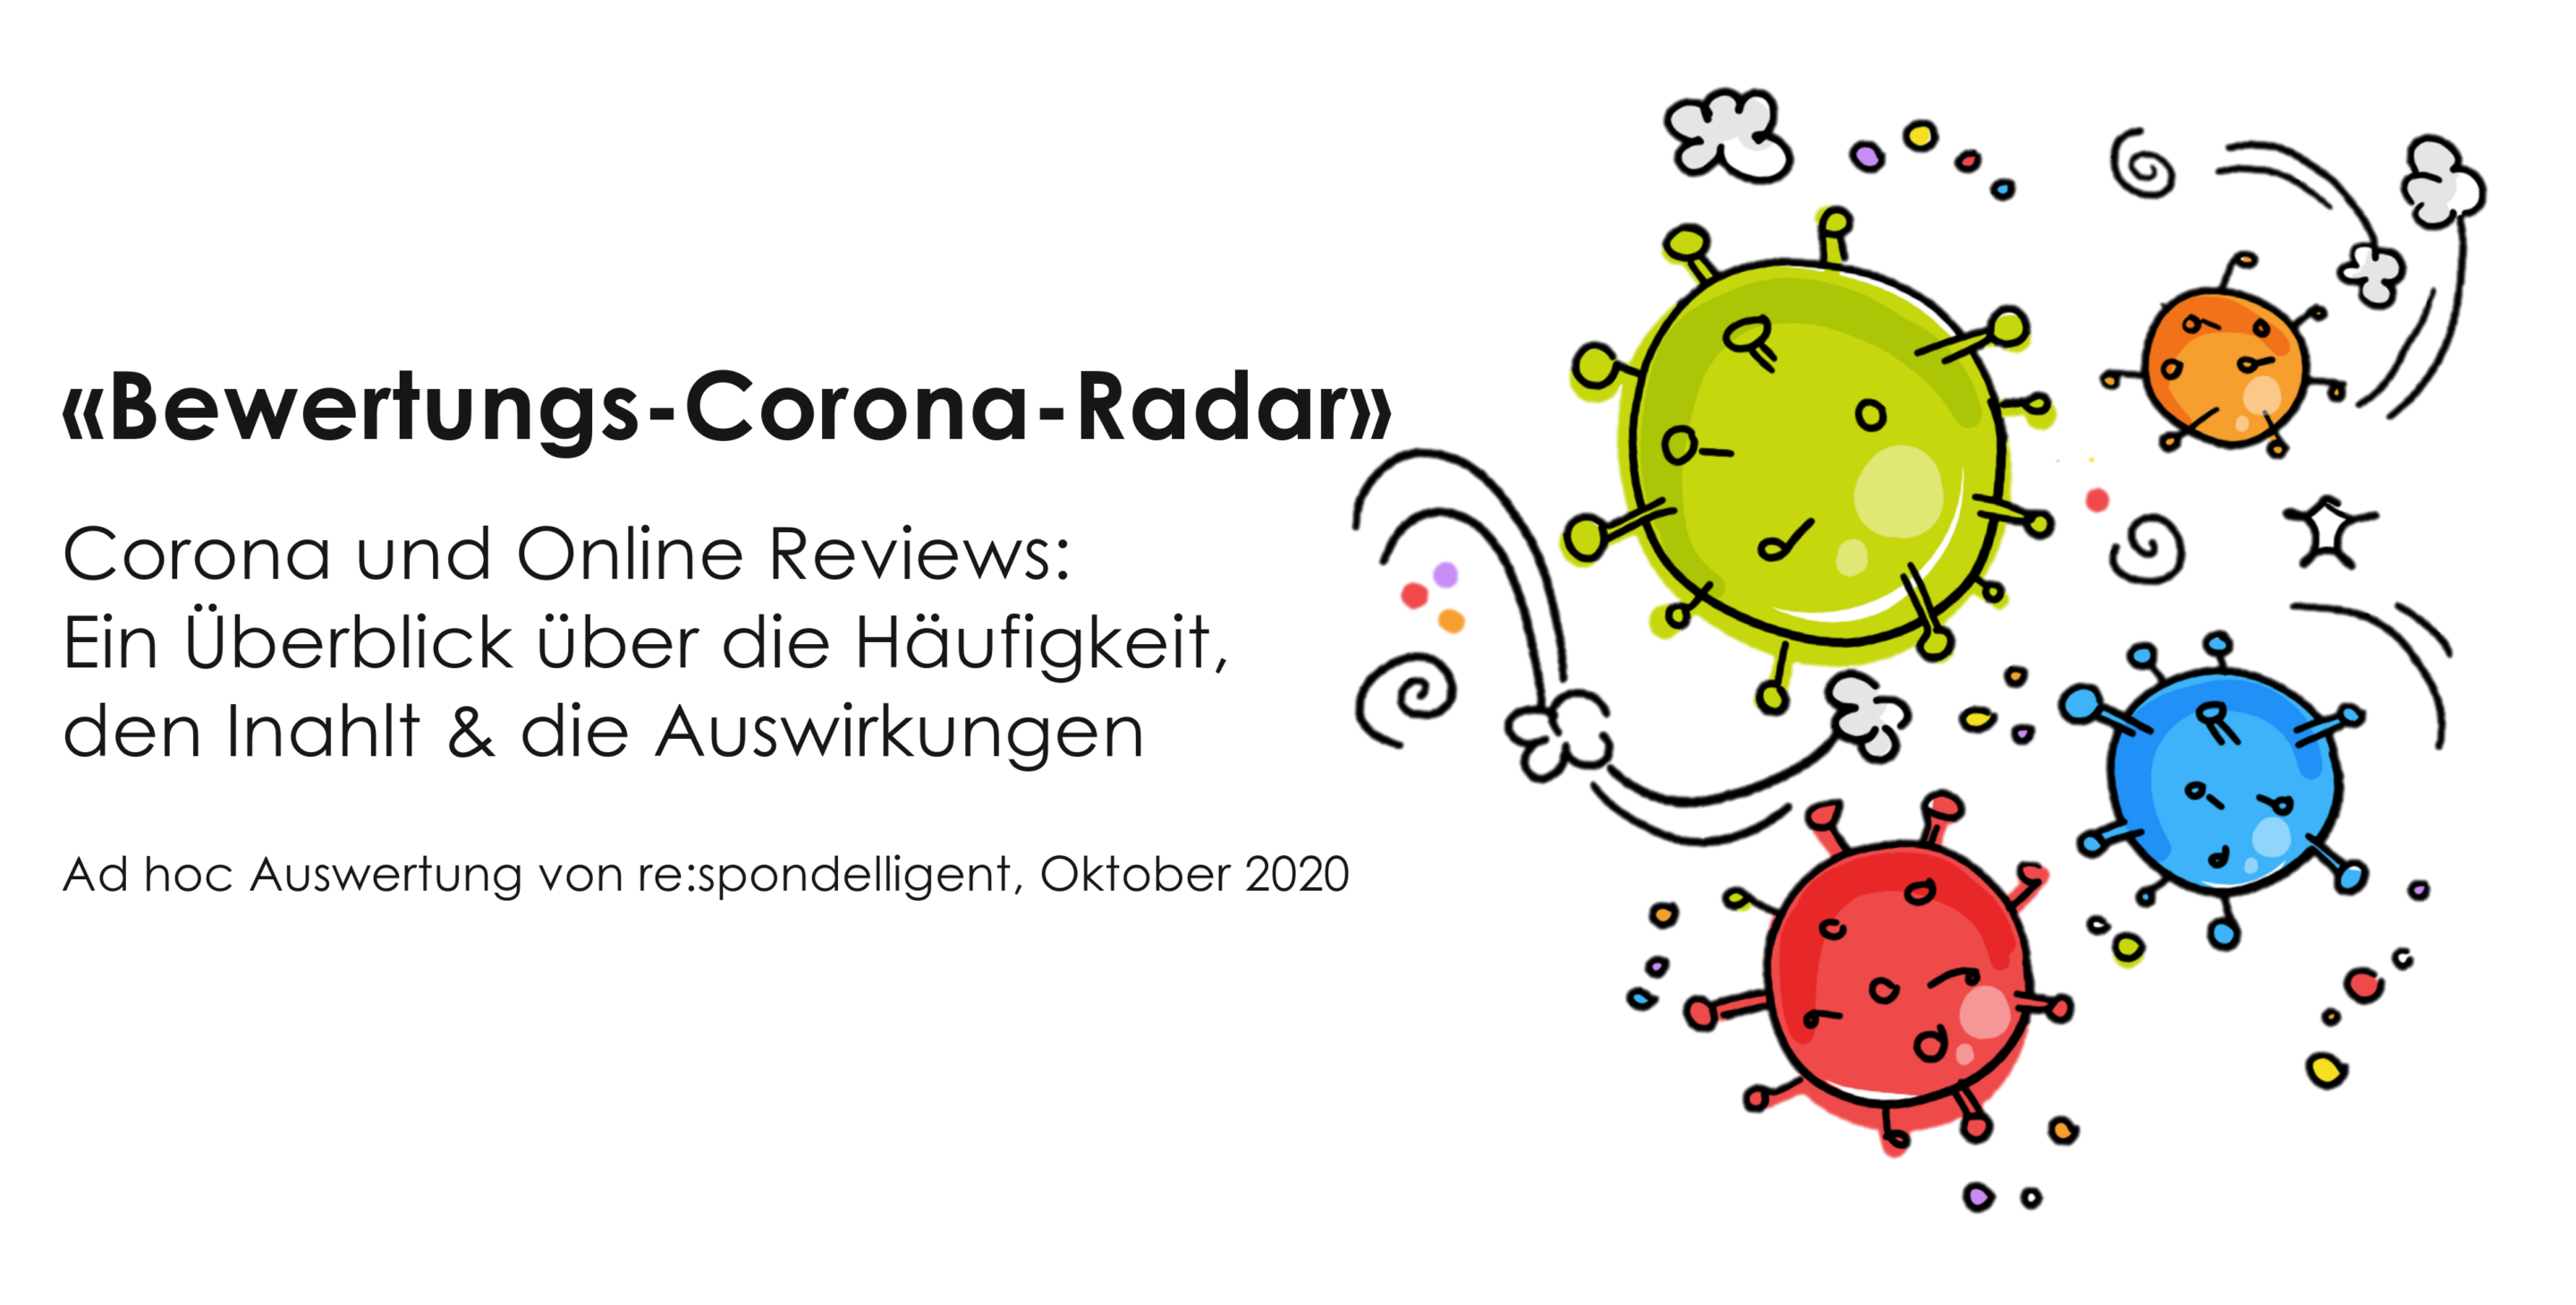 Corona-Bewertungs-Radar